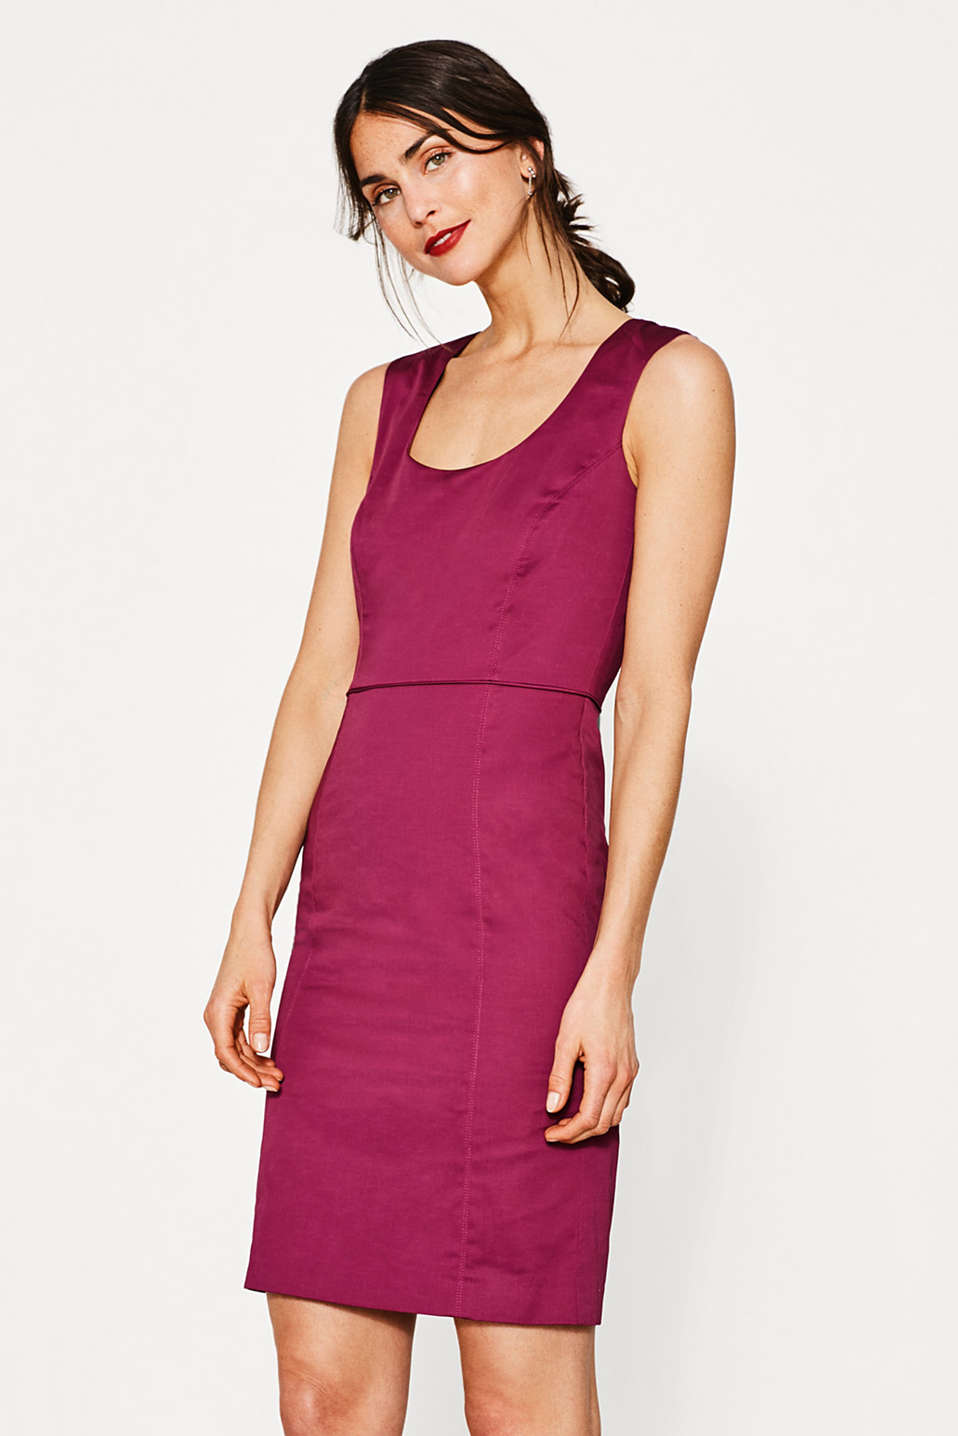 Sheath dress in cotton/stretch